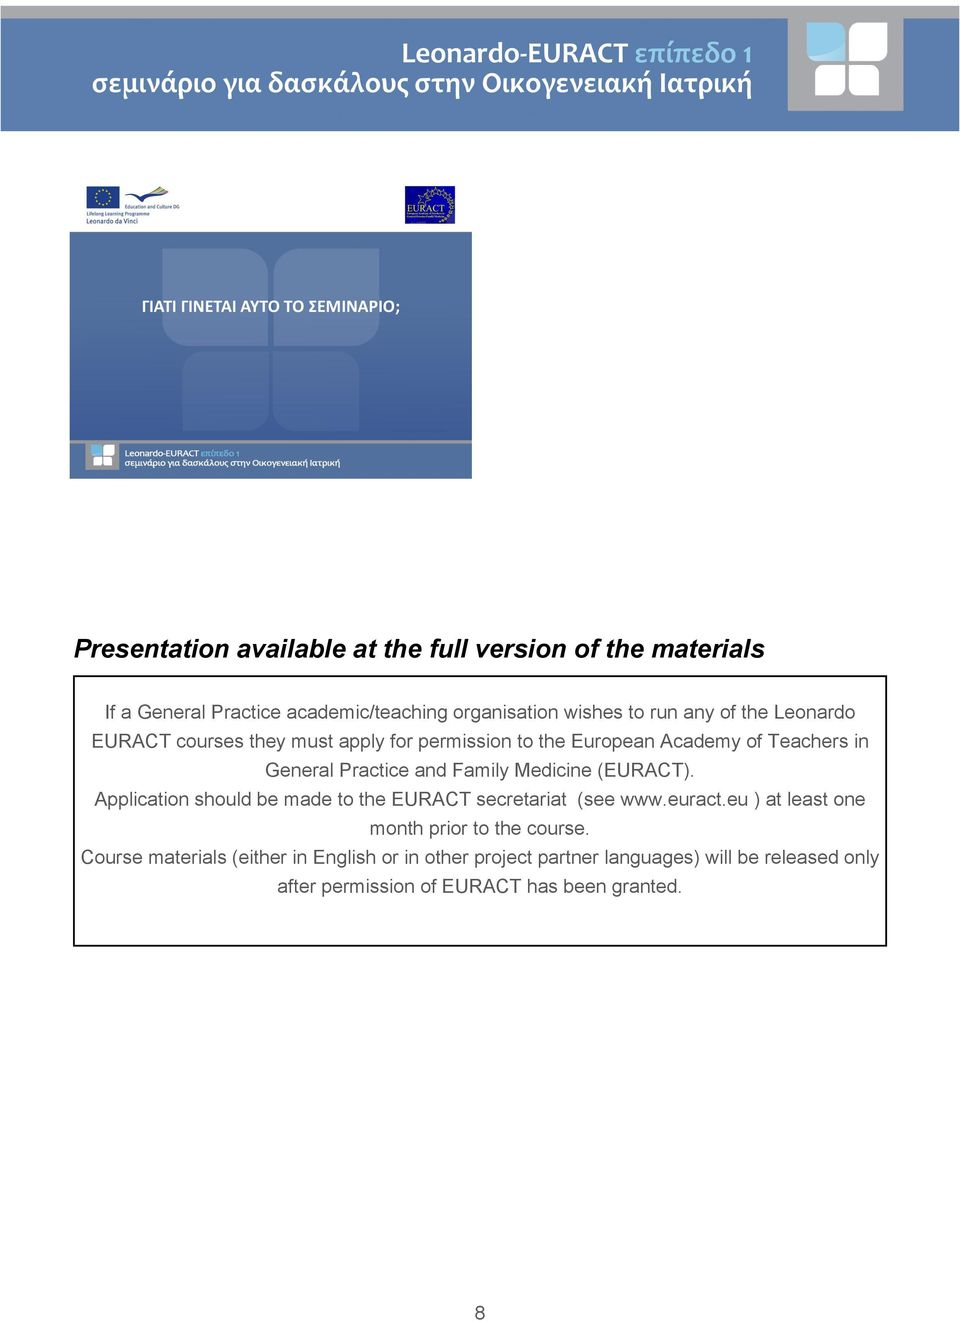 Practice and Family Medicine (EURACT). Application should be made to the EURACT secretariat (see www.euract.